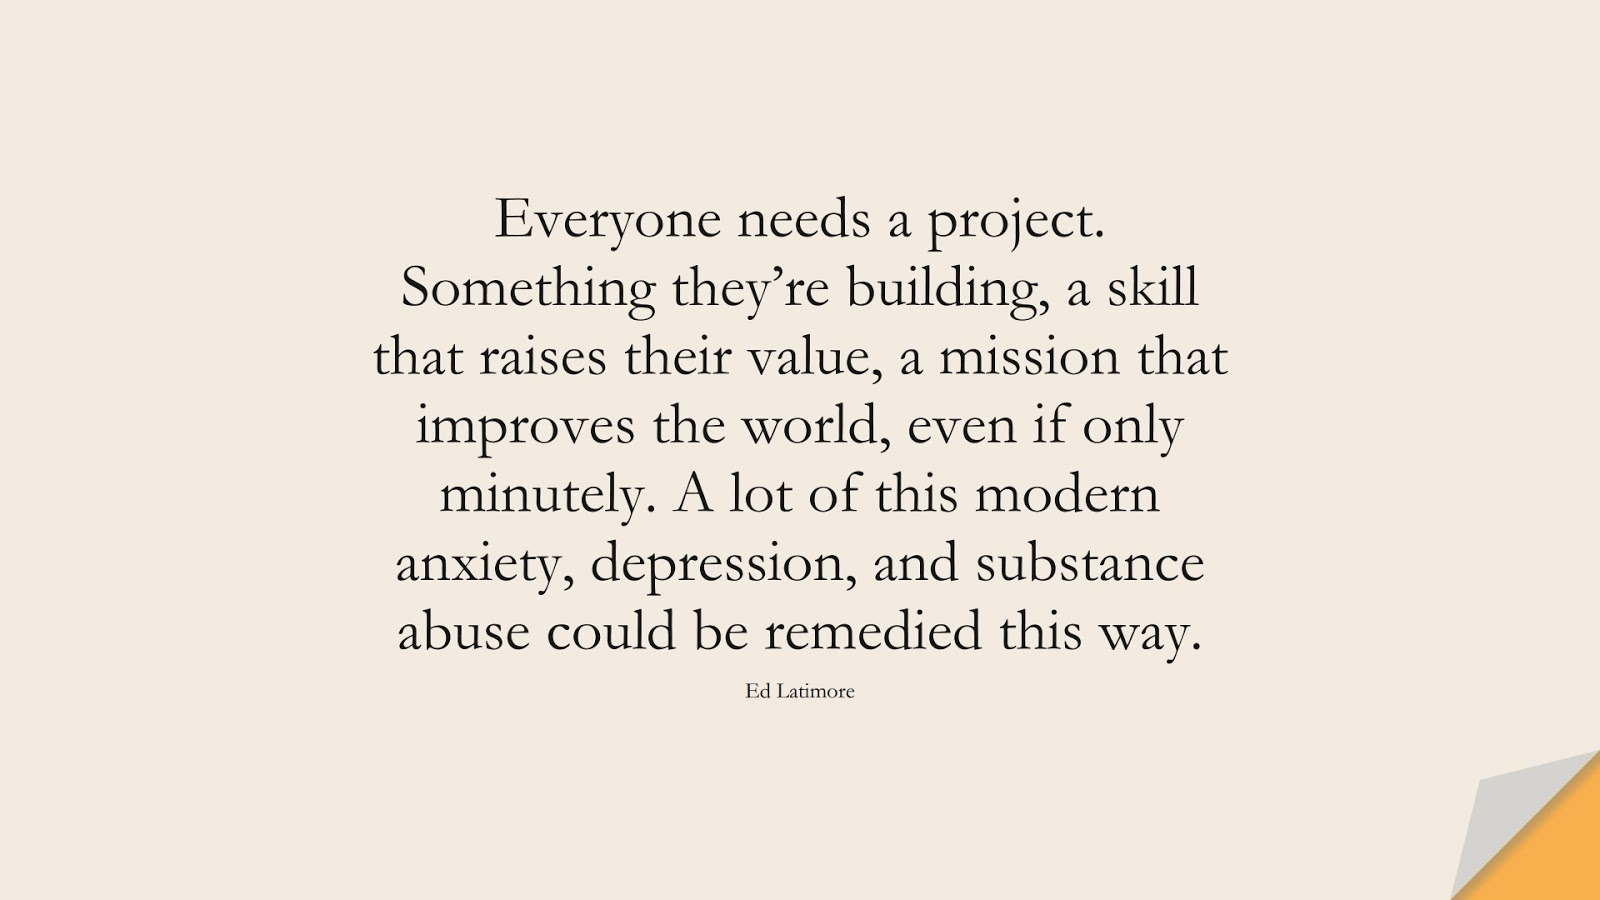 Everyone needs a project. Something they're building, a skill that raises their value, a mission that improves the world, even if only minutely. A lot of this modern anxiety, depression, and substance abuse could be remedied this way. (Ed Latimore);  #DepressionQuotes